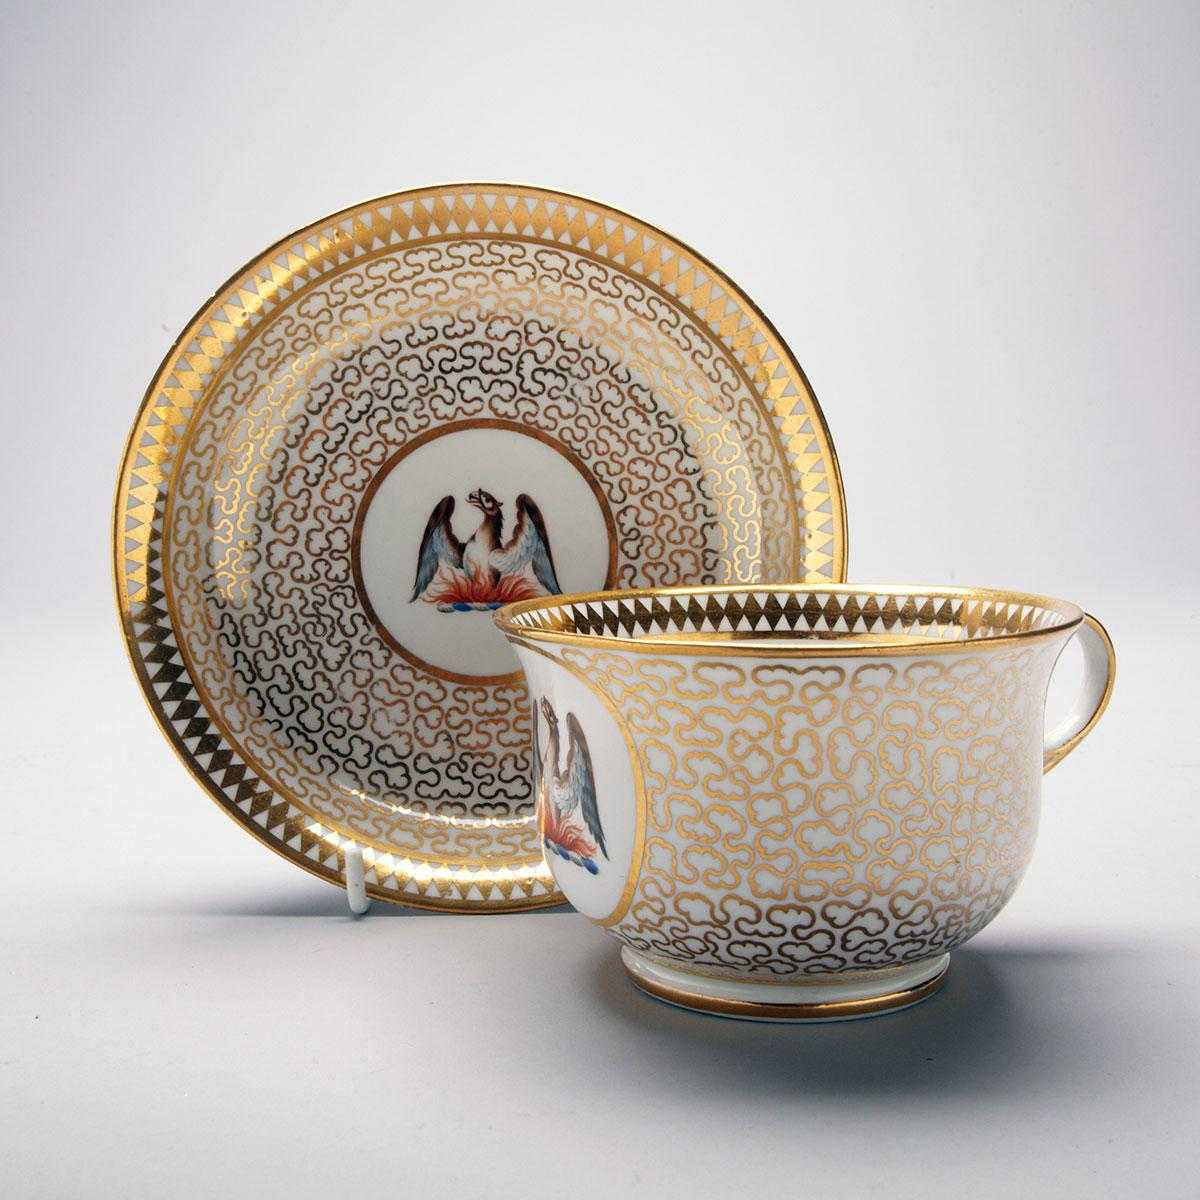 Chamberlains Worcester Gilt Vermiculated Ground Armorial Breakfast Cup and Saucer, c.1815